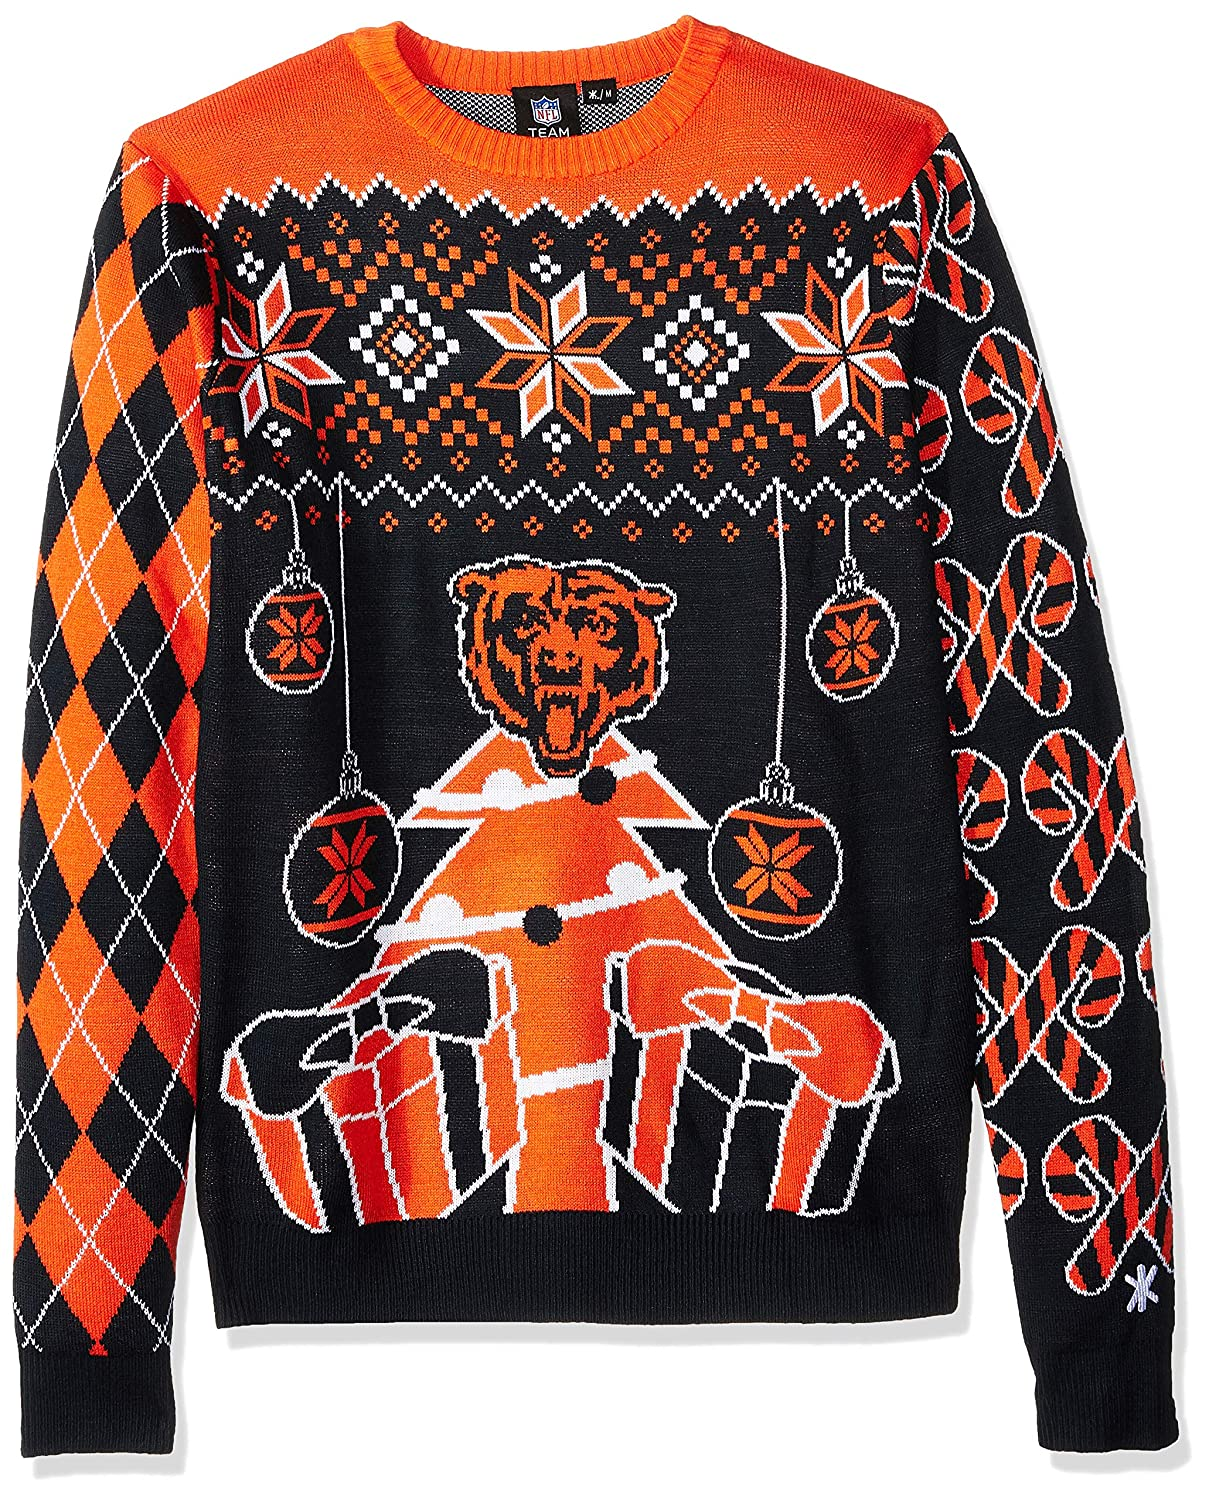 premium selection fea77 480ae FOCO NFL Mens Ugly Sweater